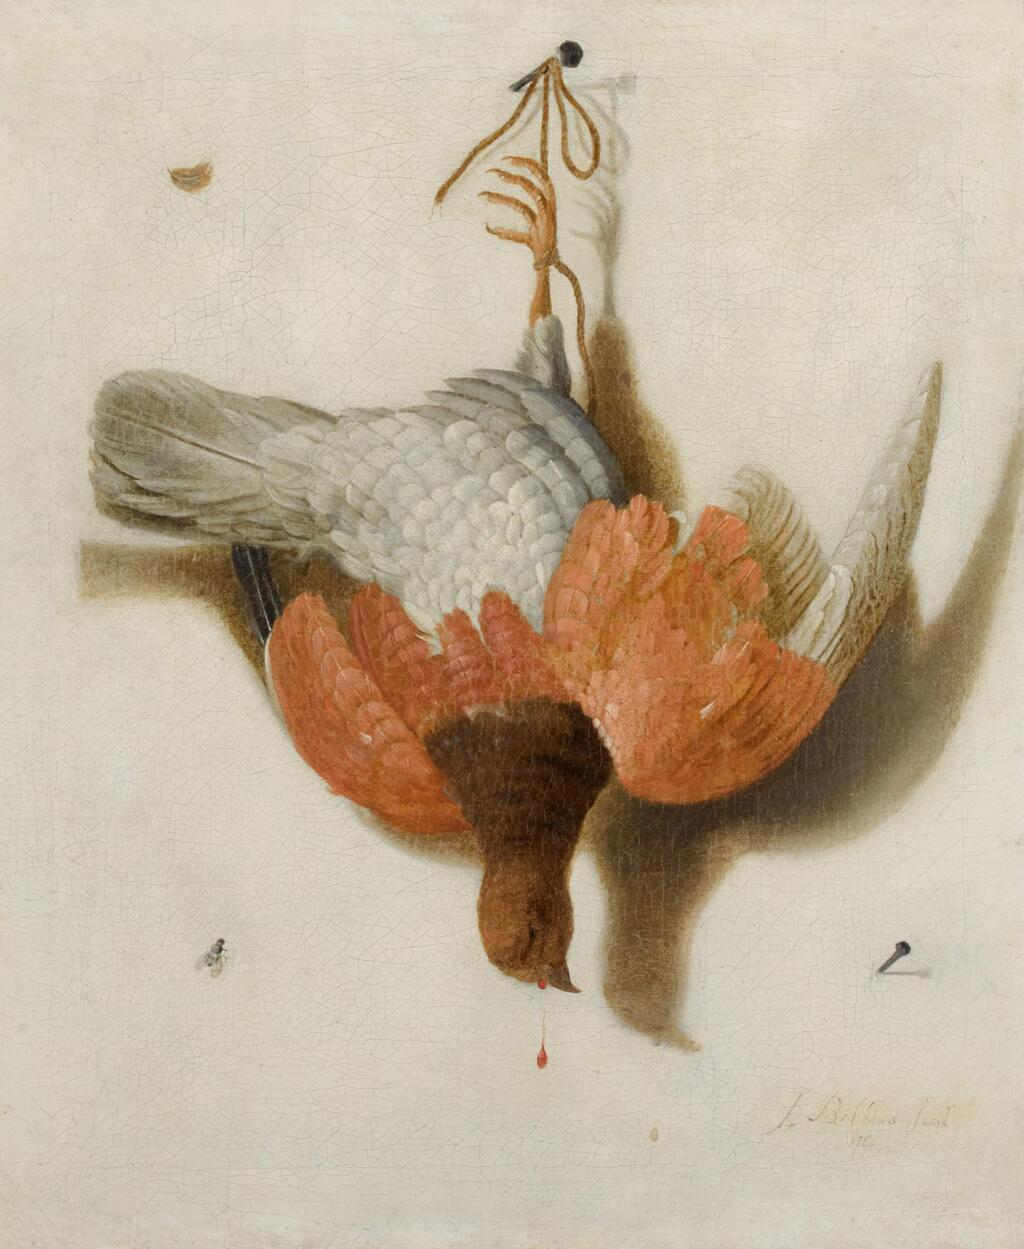 JACOBUS BILTIUS | A trompe l'œil with a willow ptarmigan hanging from a nail